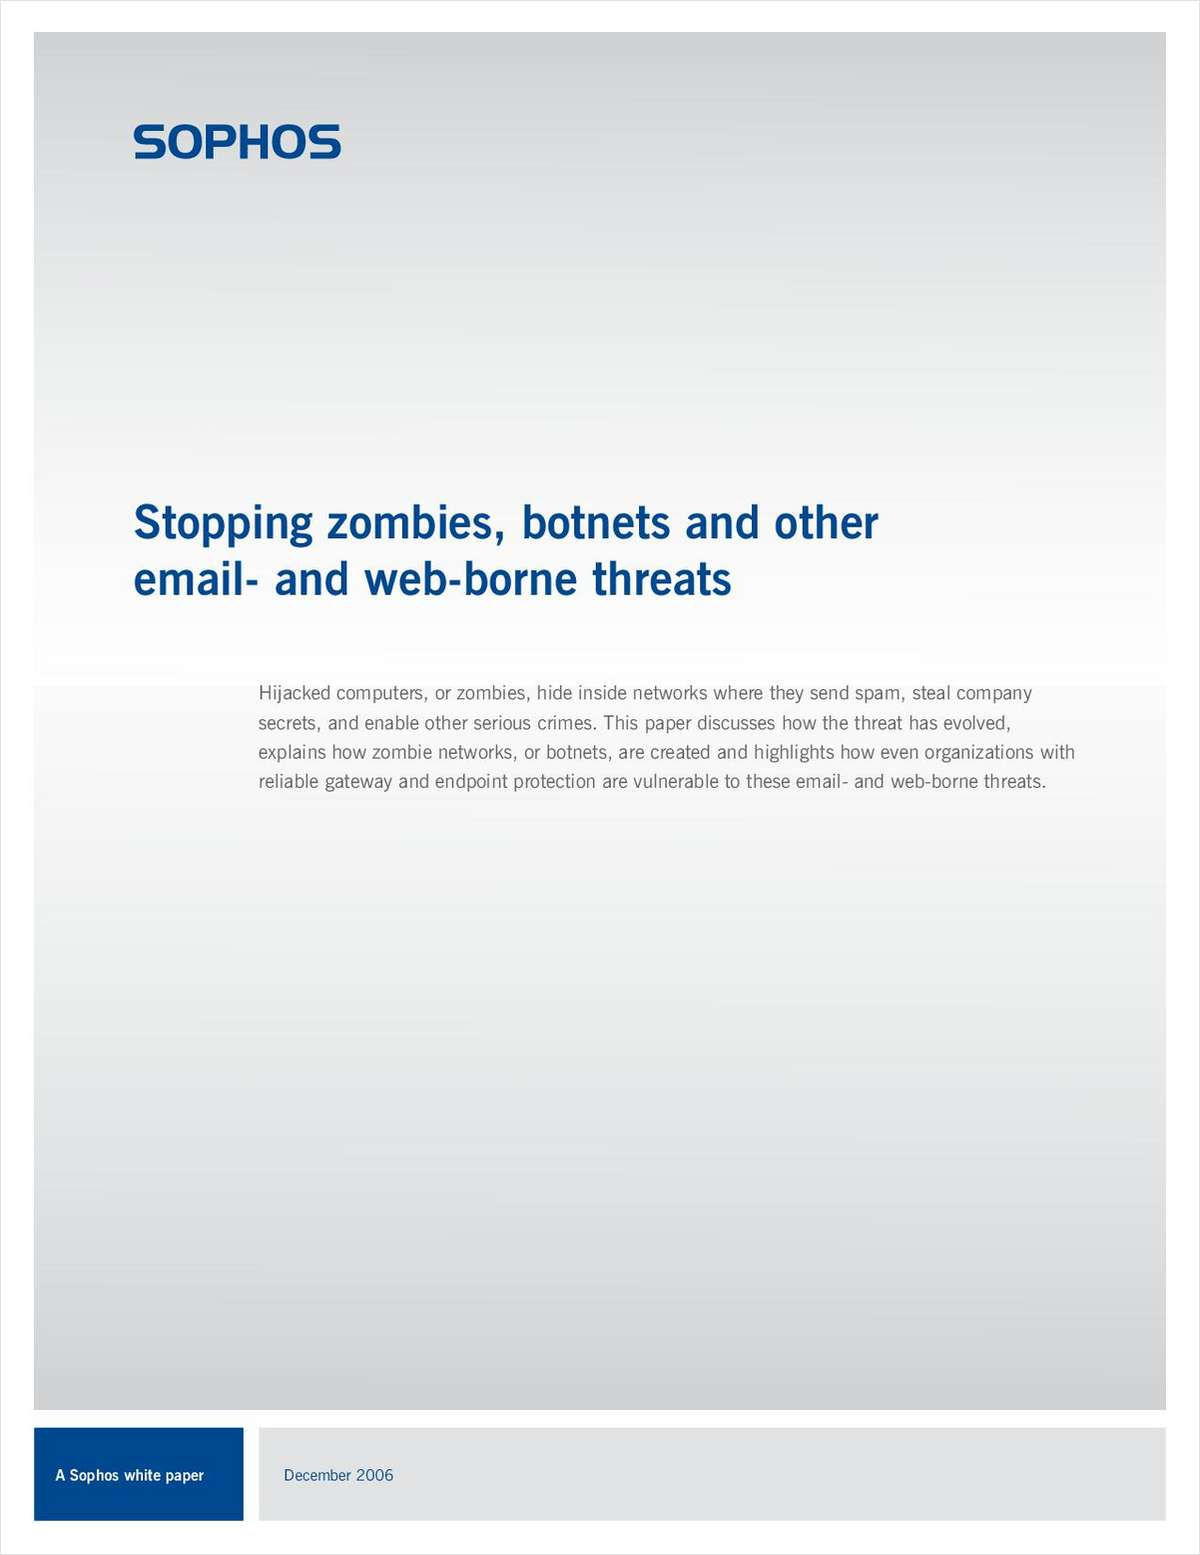 Stopping Zombies, Botnets and Other Email and Web-Borne Threats